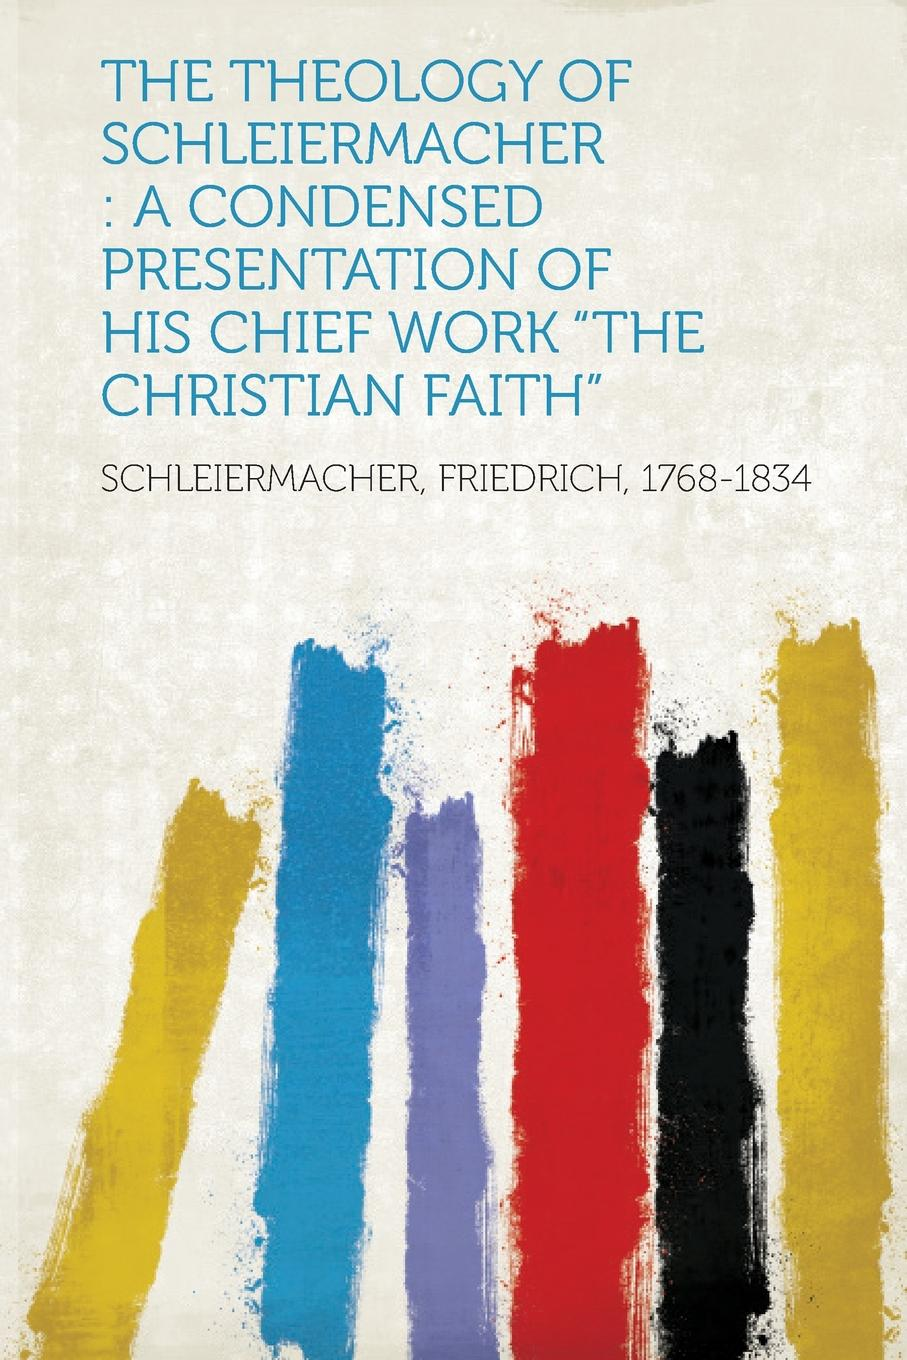 The Theology of Schleiermacher. A Condensed Presentation of His Chief Work the Christian Faith